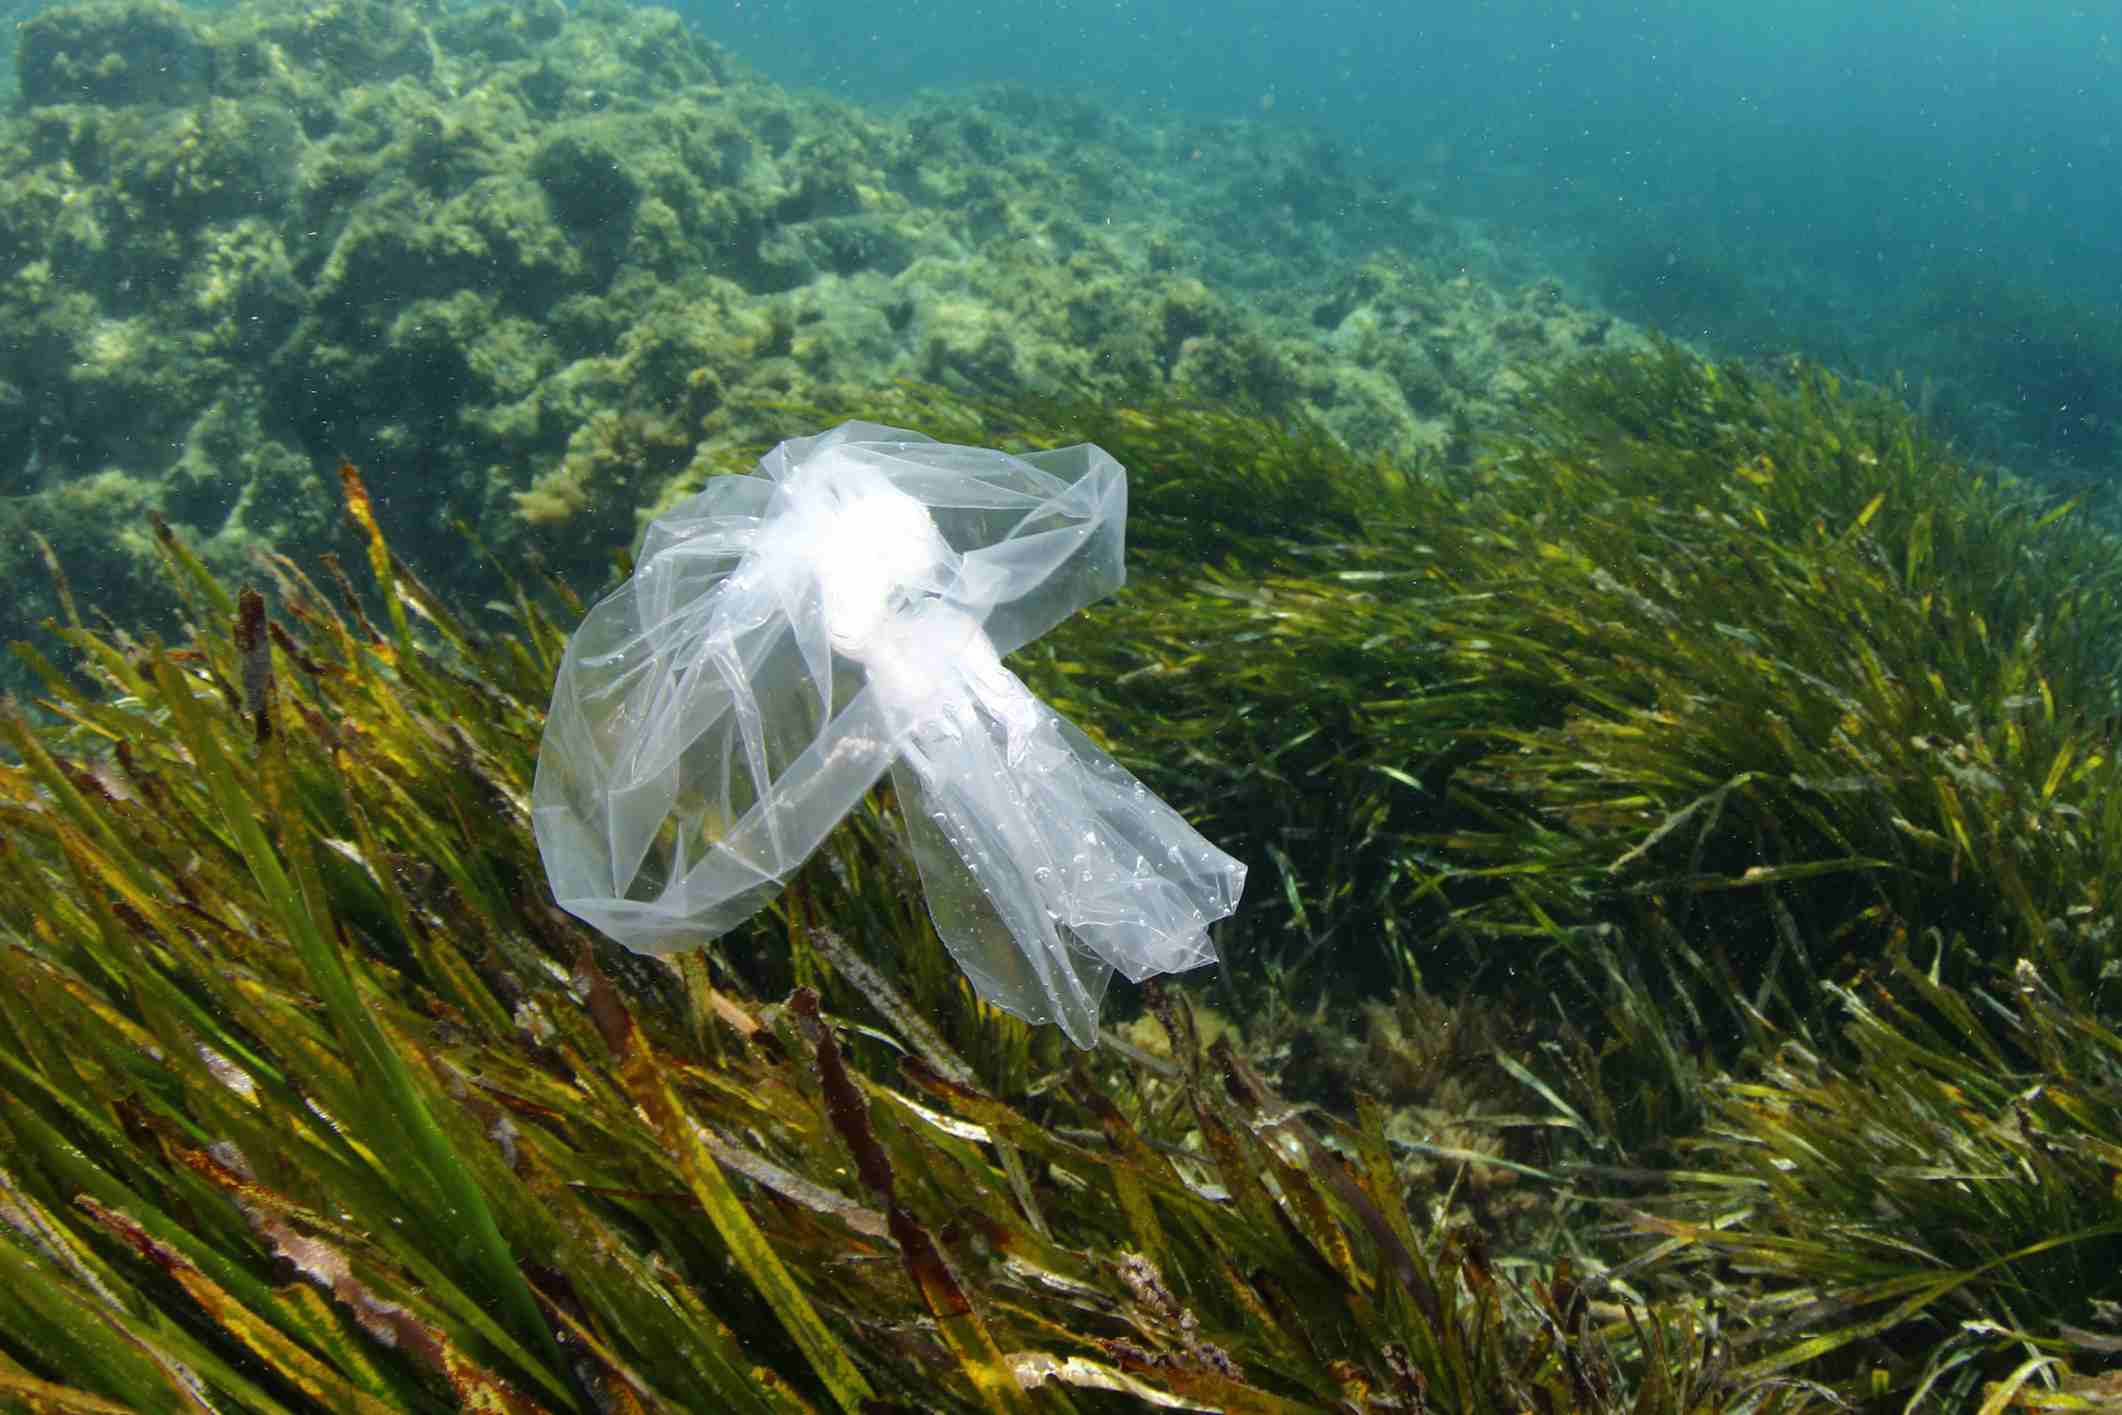 Plastic bag at sea. These can be dangerous to sea turtles who mistake them for food, such as jellyfish.